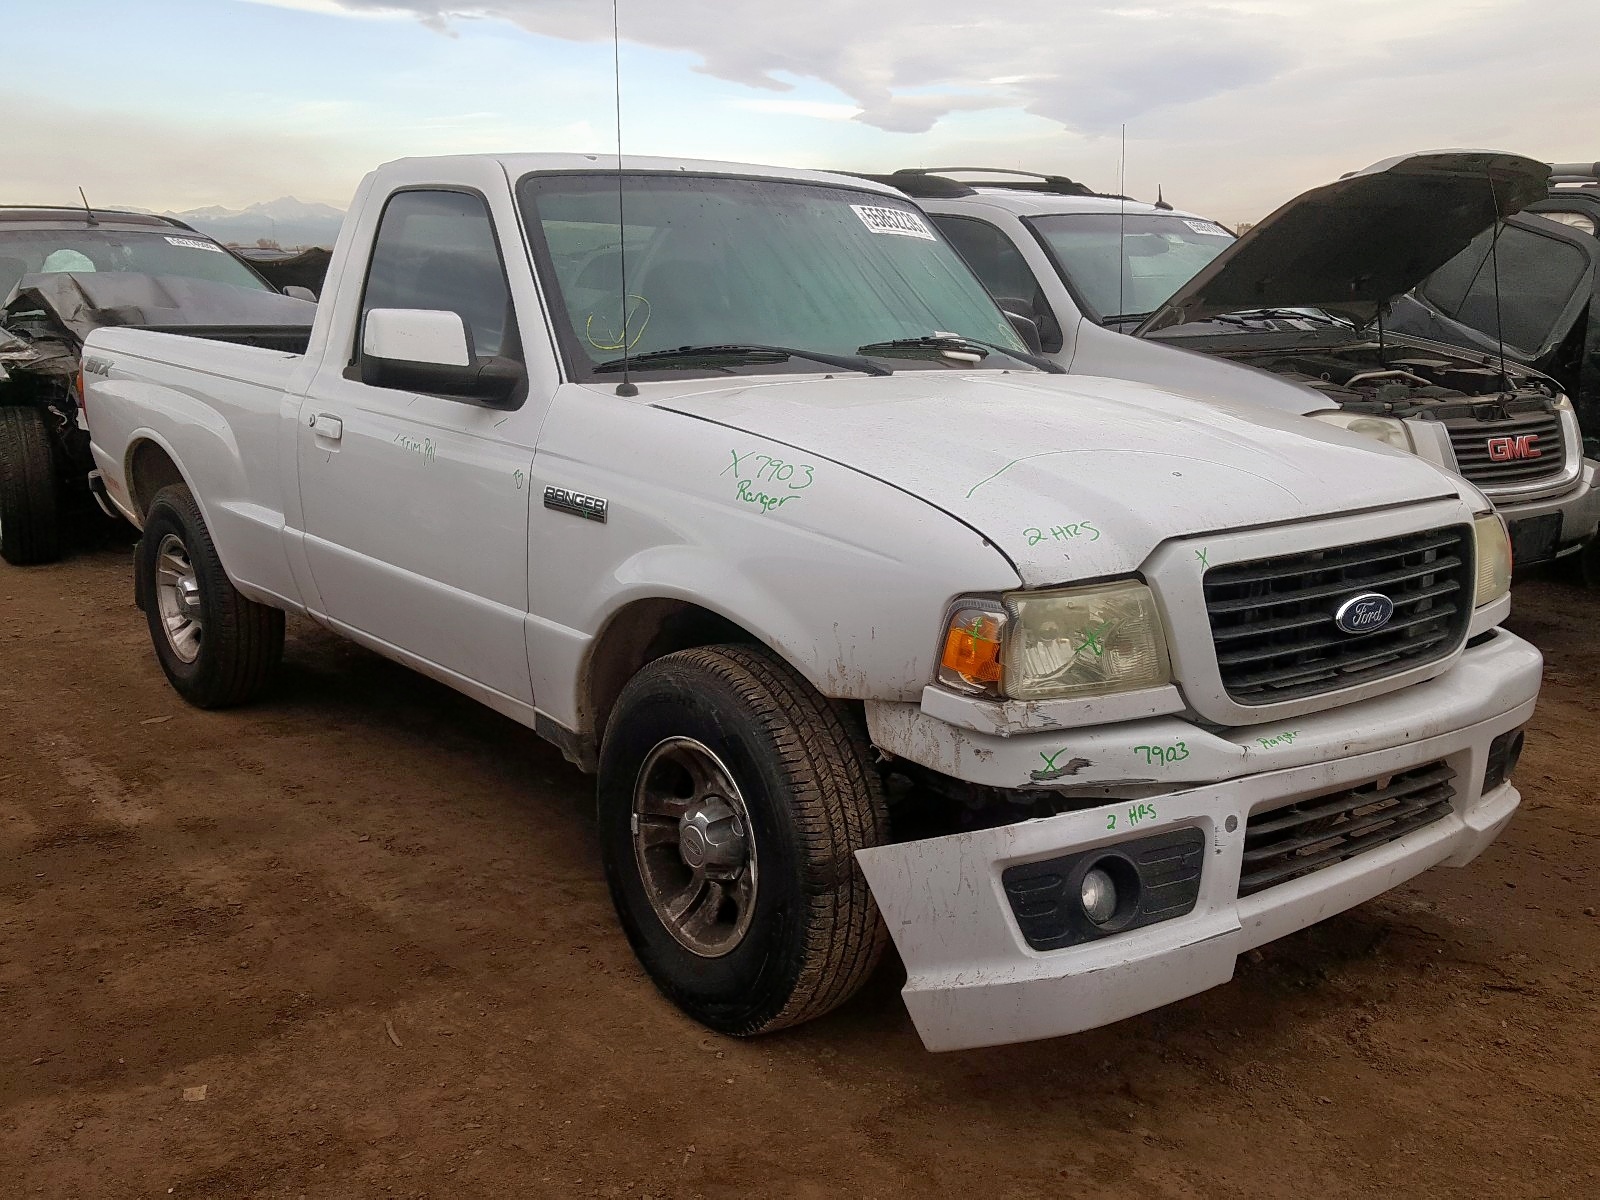 1FTYR10U26PA04908 - 2006 Ford Ranger 3.0L Left View